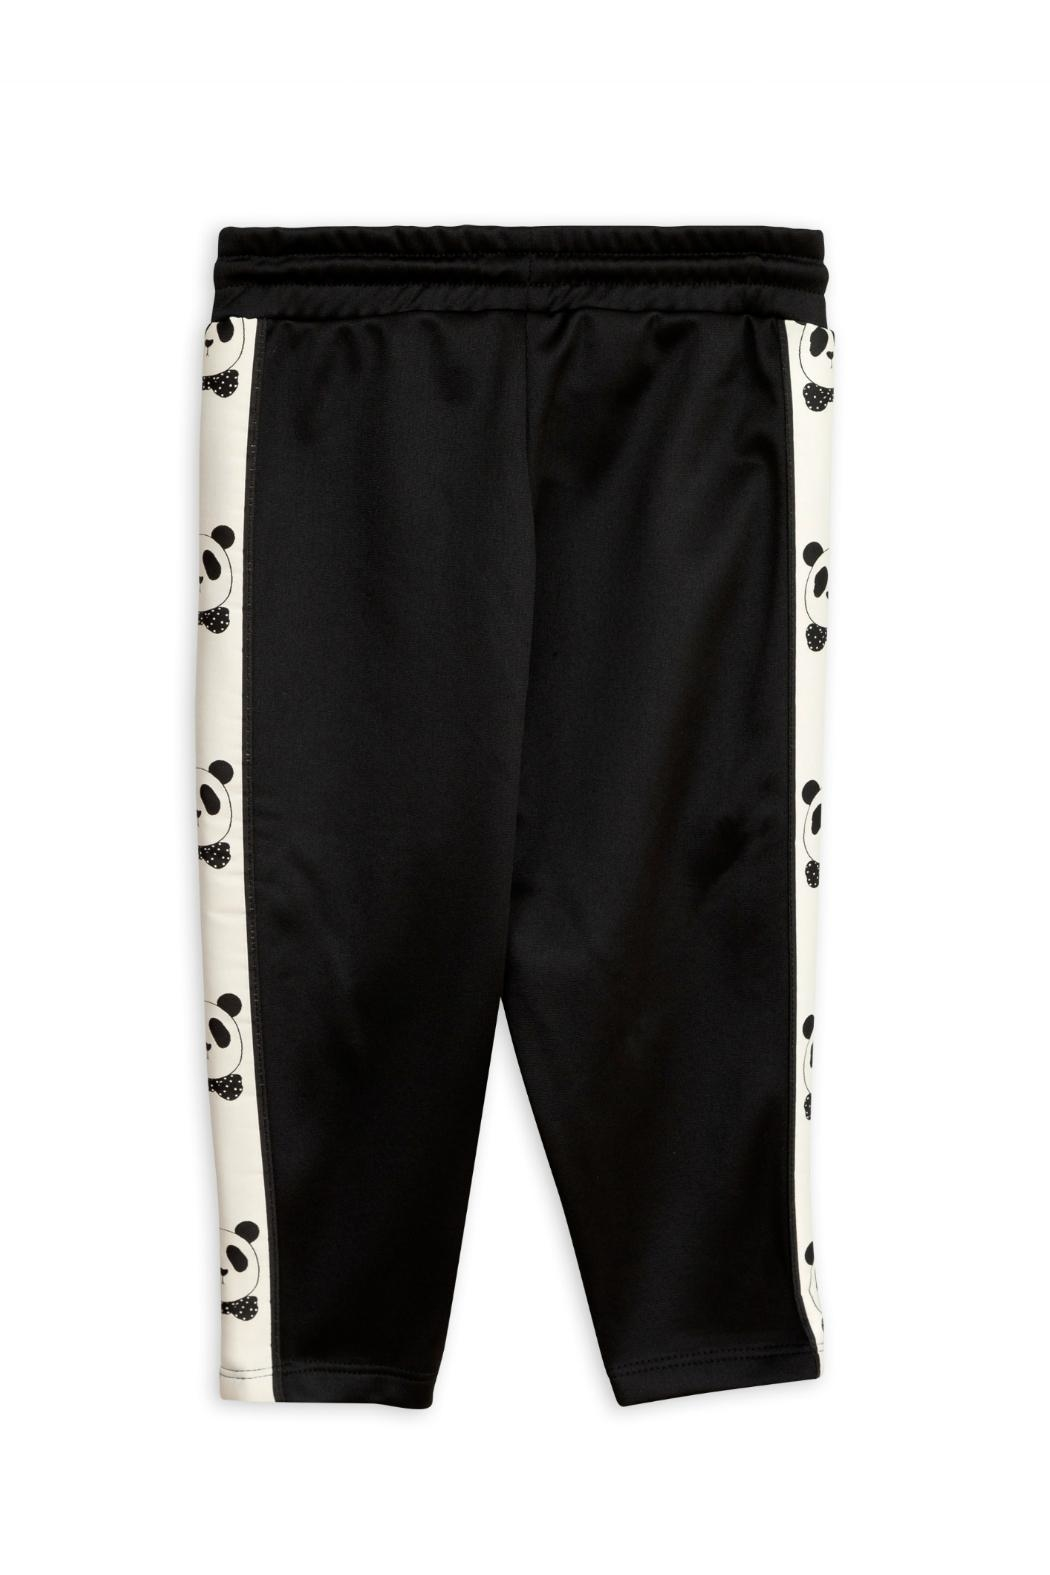 Mini Rodini Black Panda Pants - Front Full Image